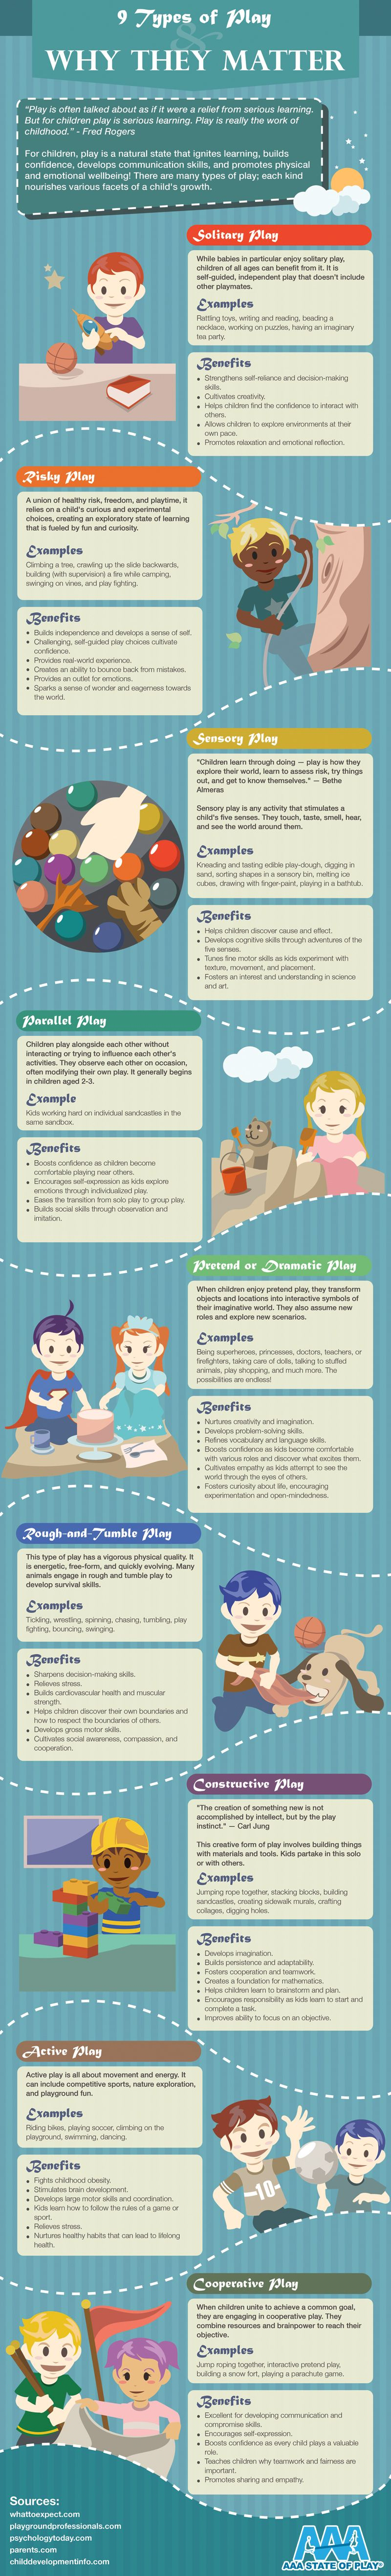 9 Types of Play and Why They Matter #Infographic